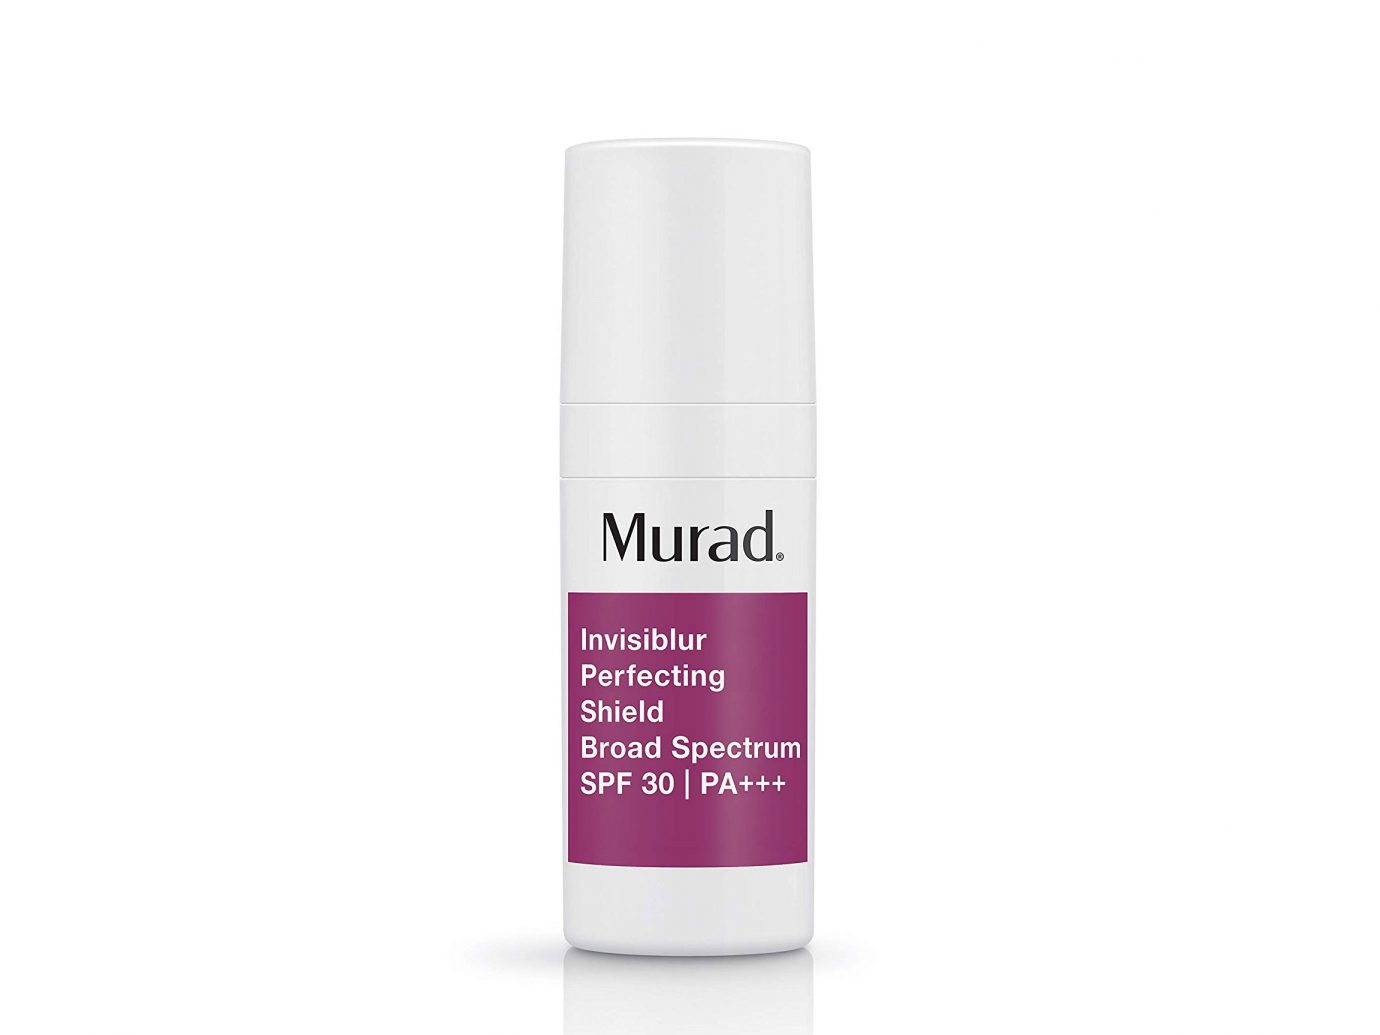 Murad Invisiblur Perfecting Shield Broad Spectrum SPF 30 Serum